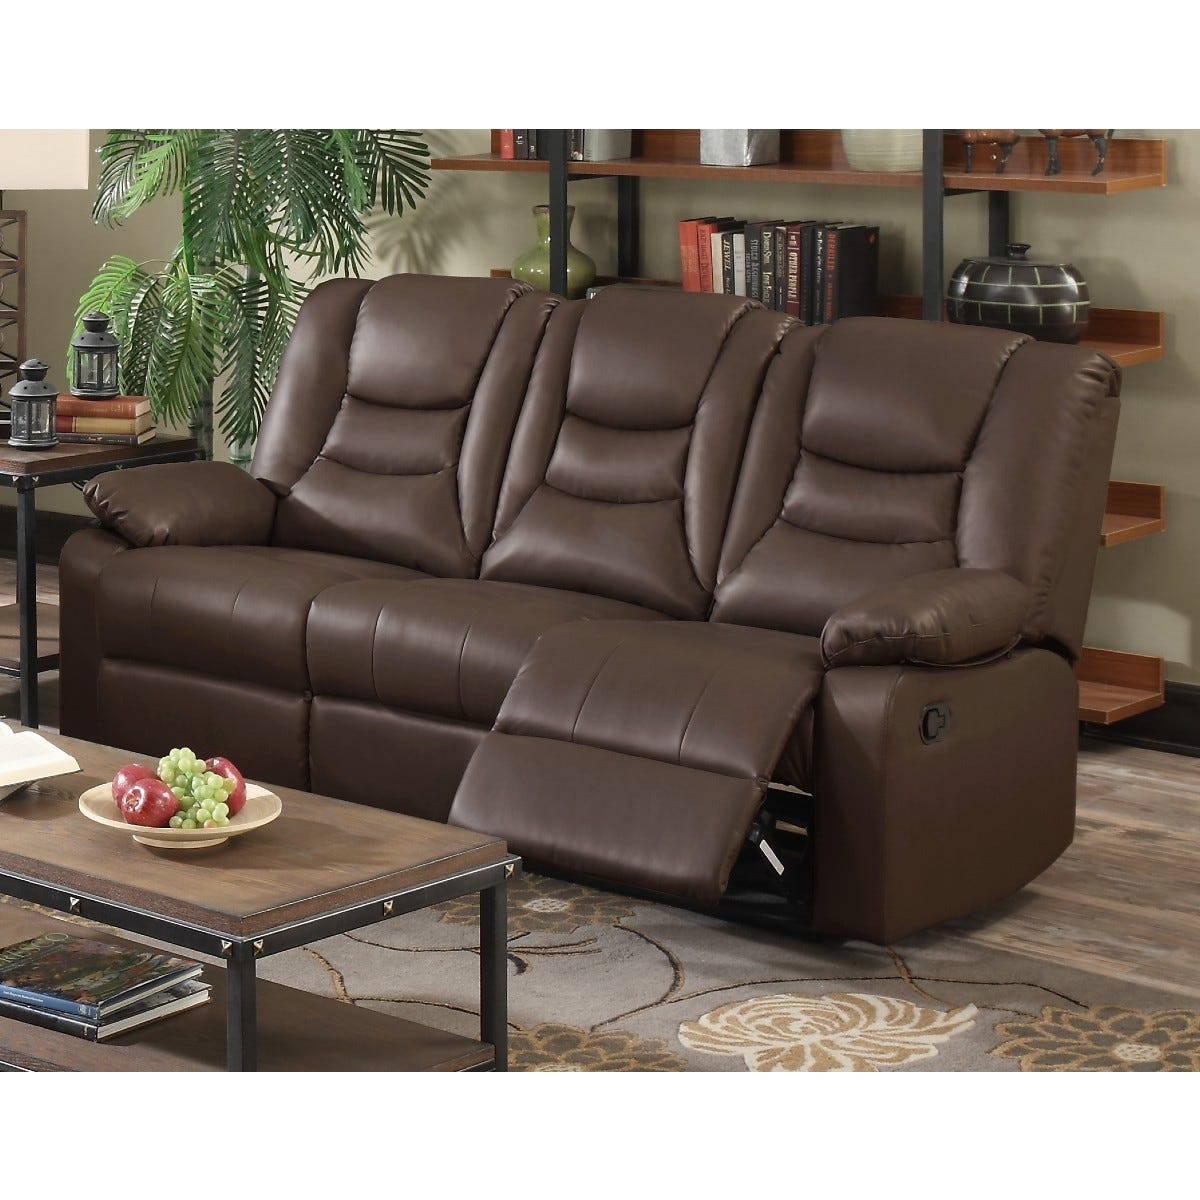 Kington LeatherGel and Faux Leather Reclining 3 Seater Sofa Brown